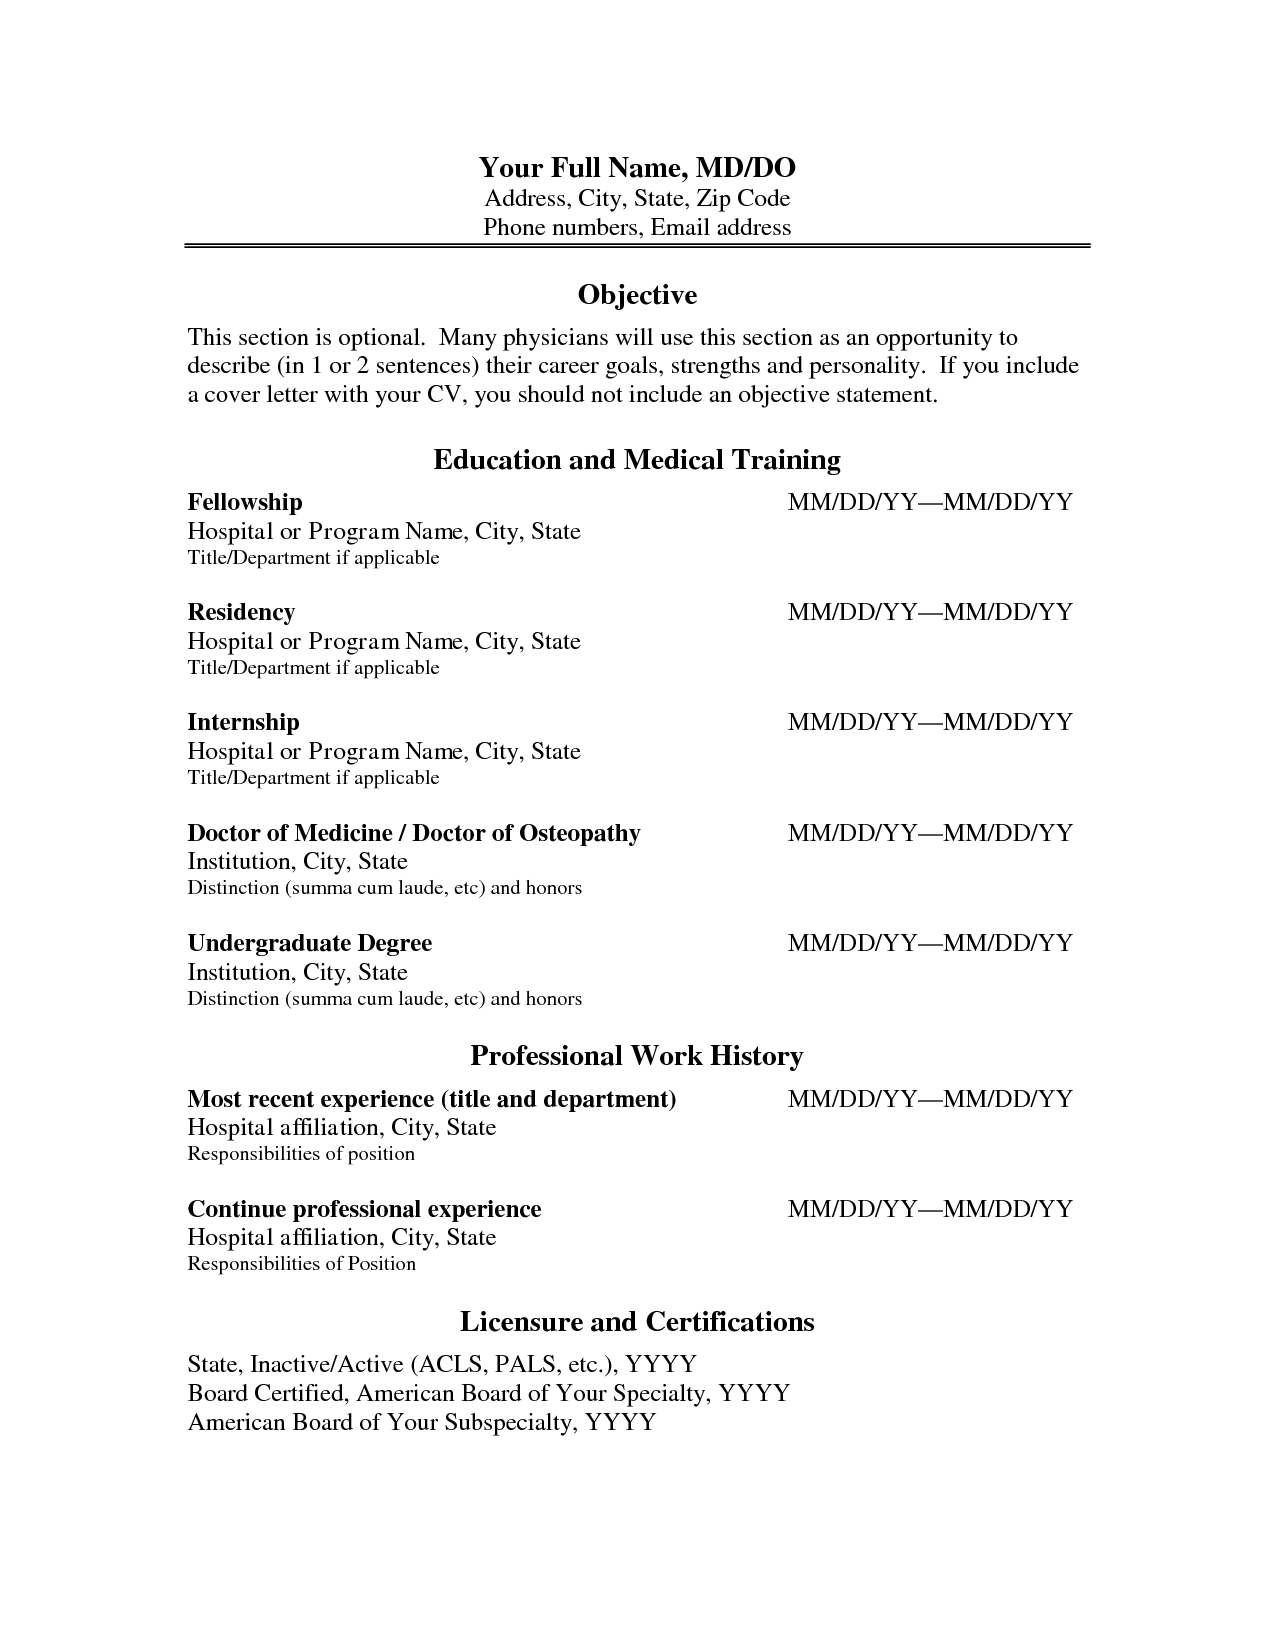 Cv Format Physician Physician Assistant Resume And Curriculum – Resume Cv Format